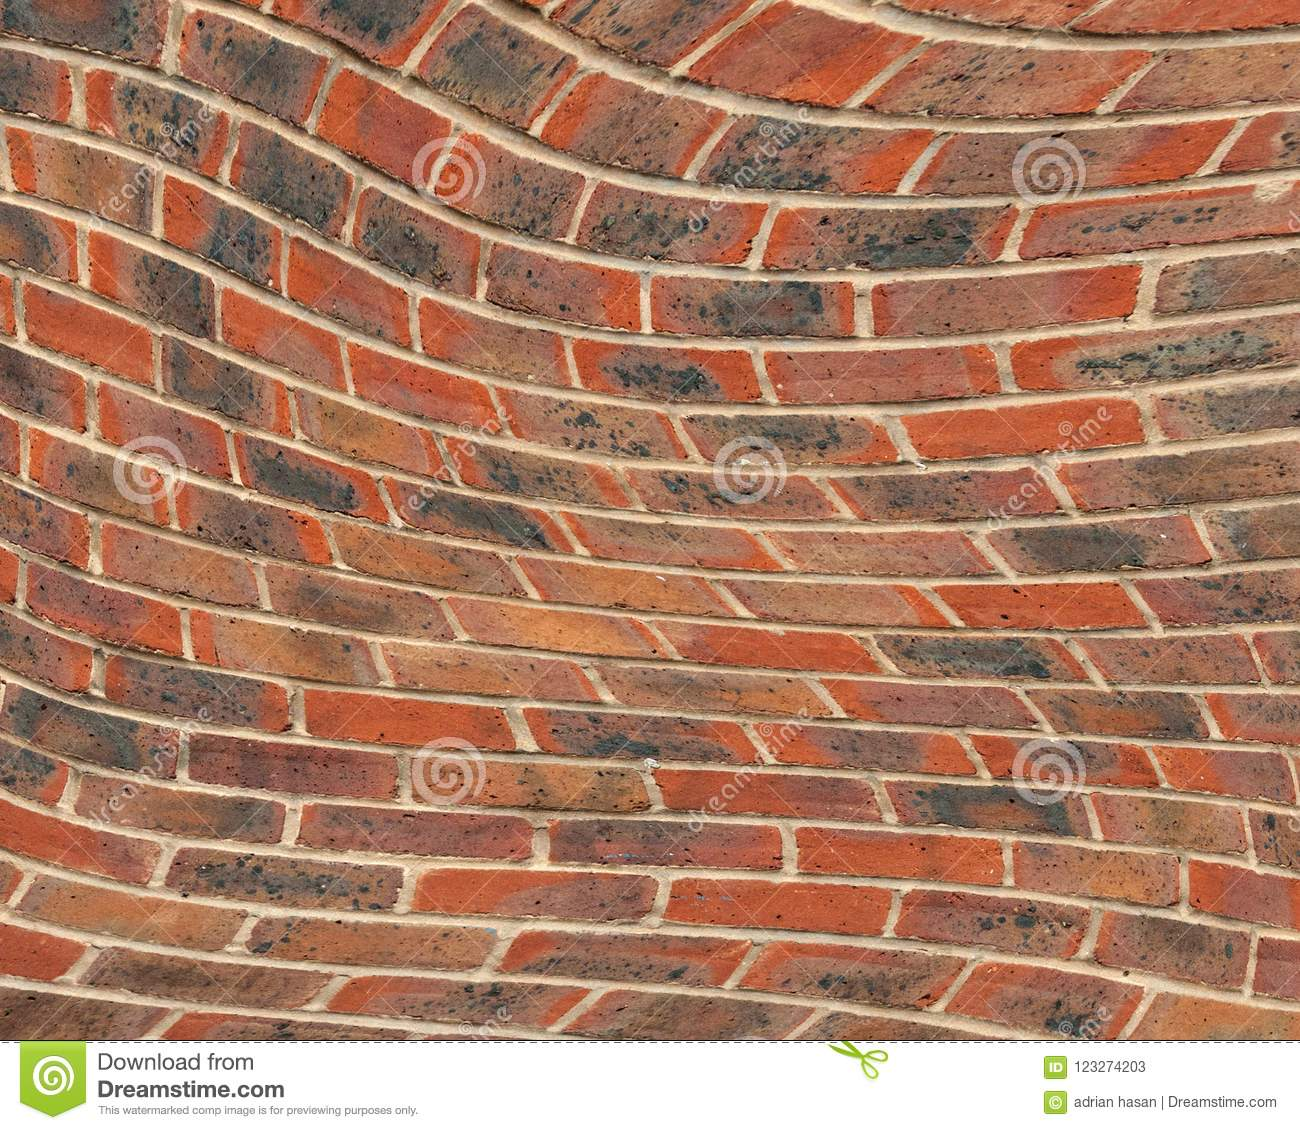 Brick Wall Texture Background Wallpaper Hd Stock Image Image Of